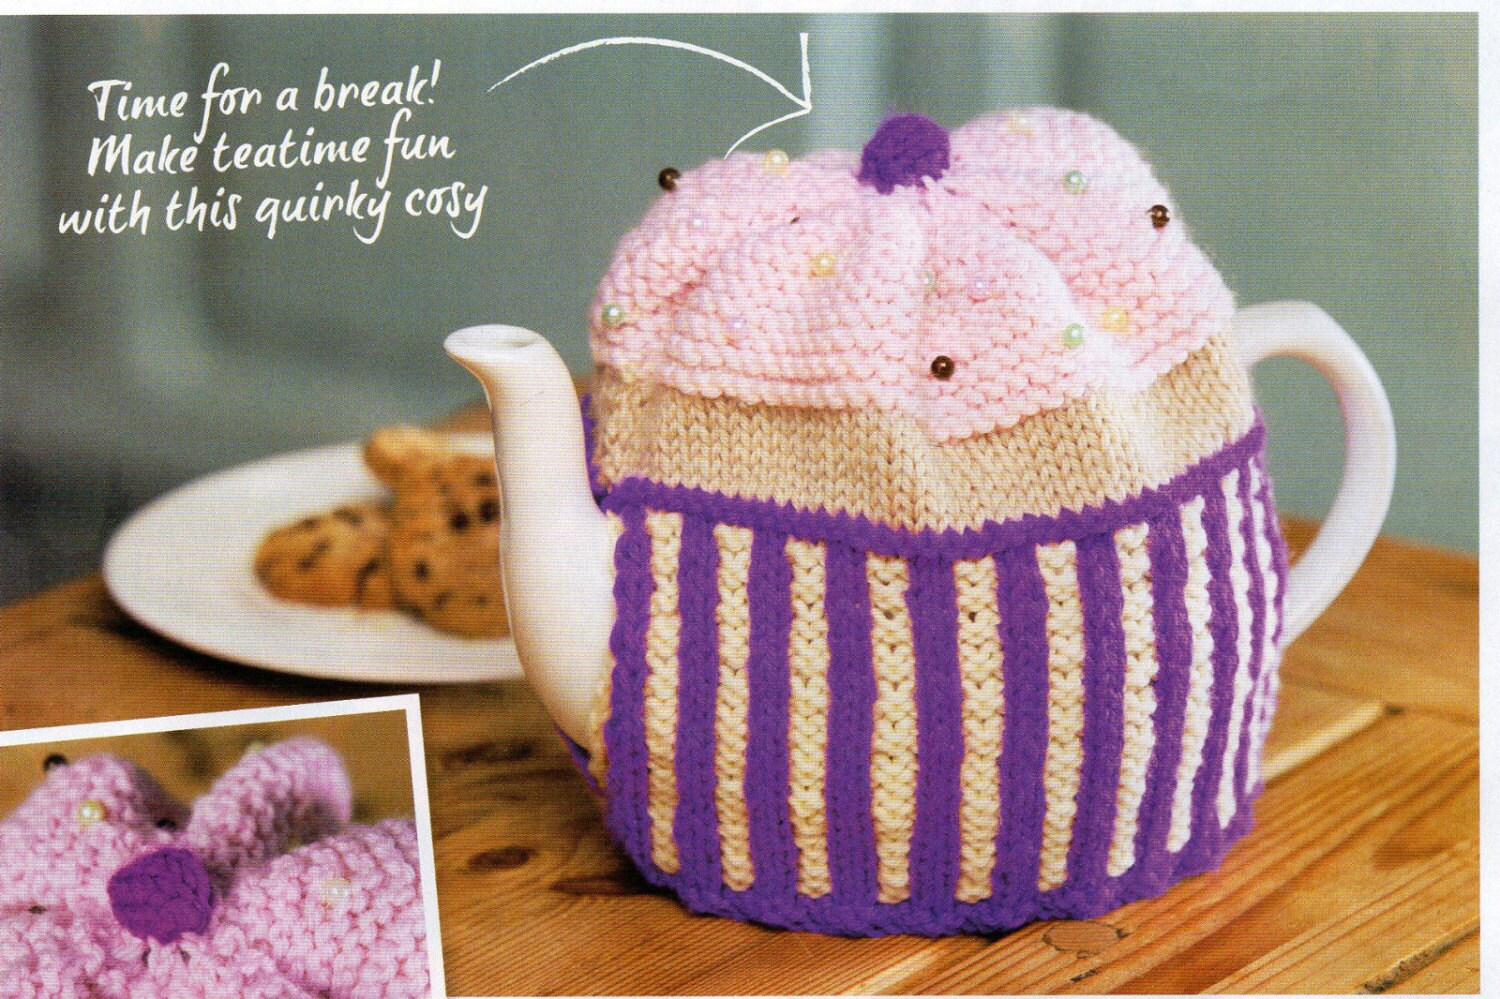 Knitting Pattern For One Cup Tea Cosy : cup cake tea cosy knitting pattern 99p